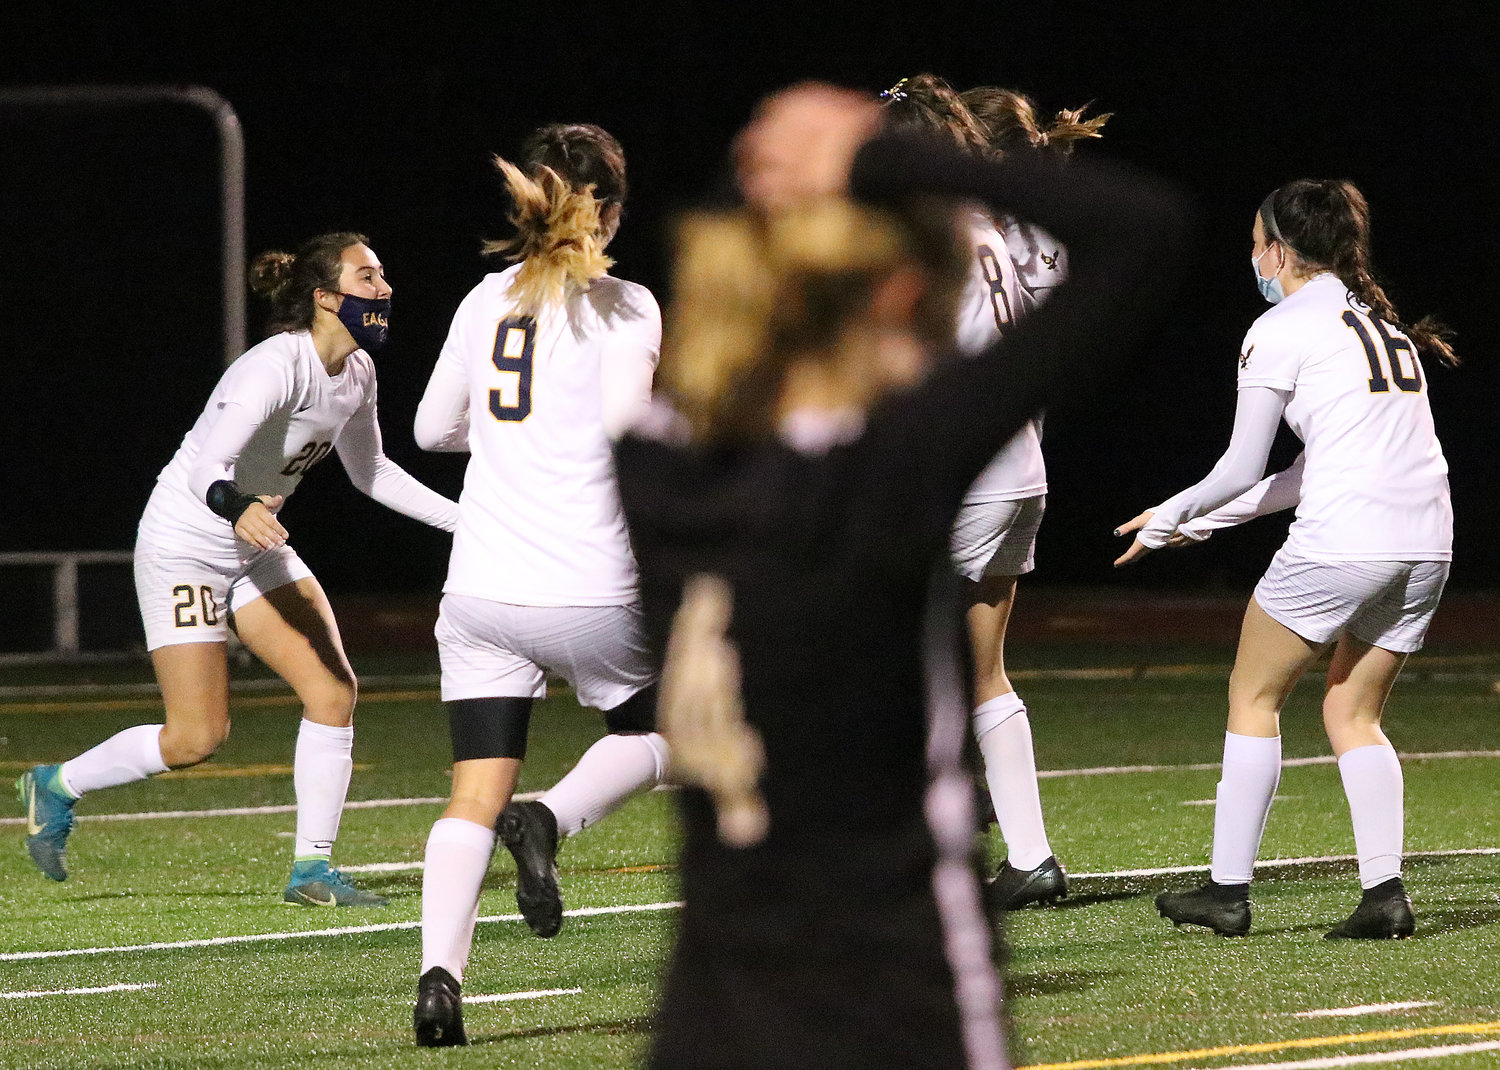 Barrington High School teammates celebrate after Tess Gagliano scored to even the game at 1-1.